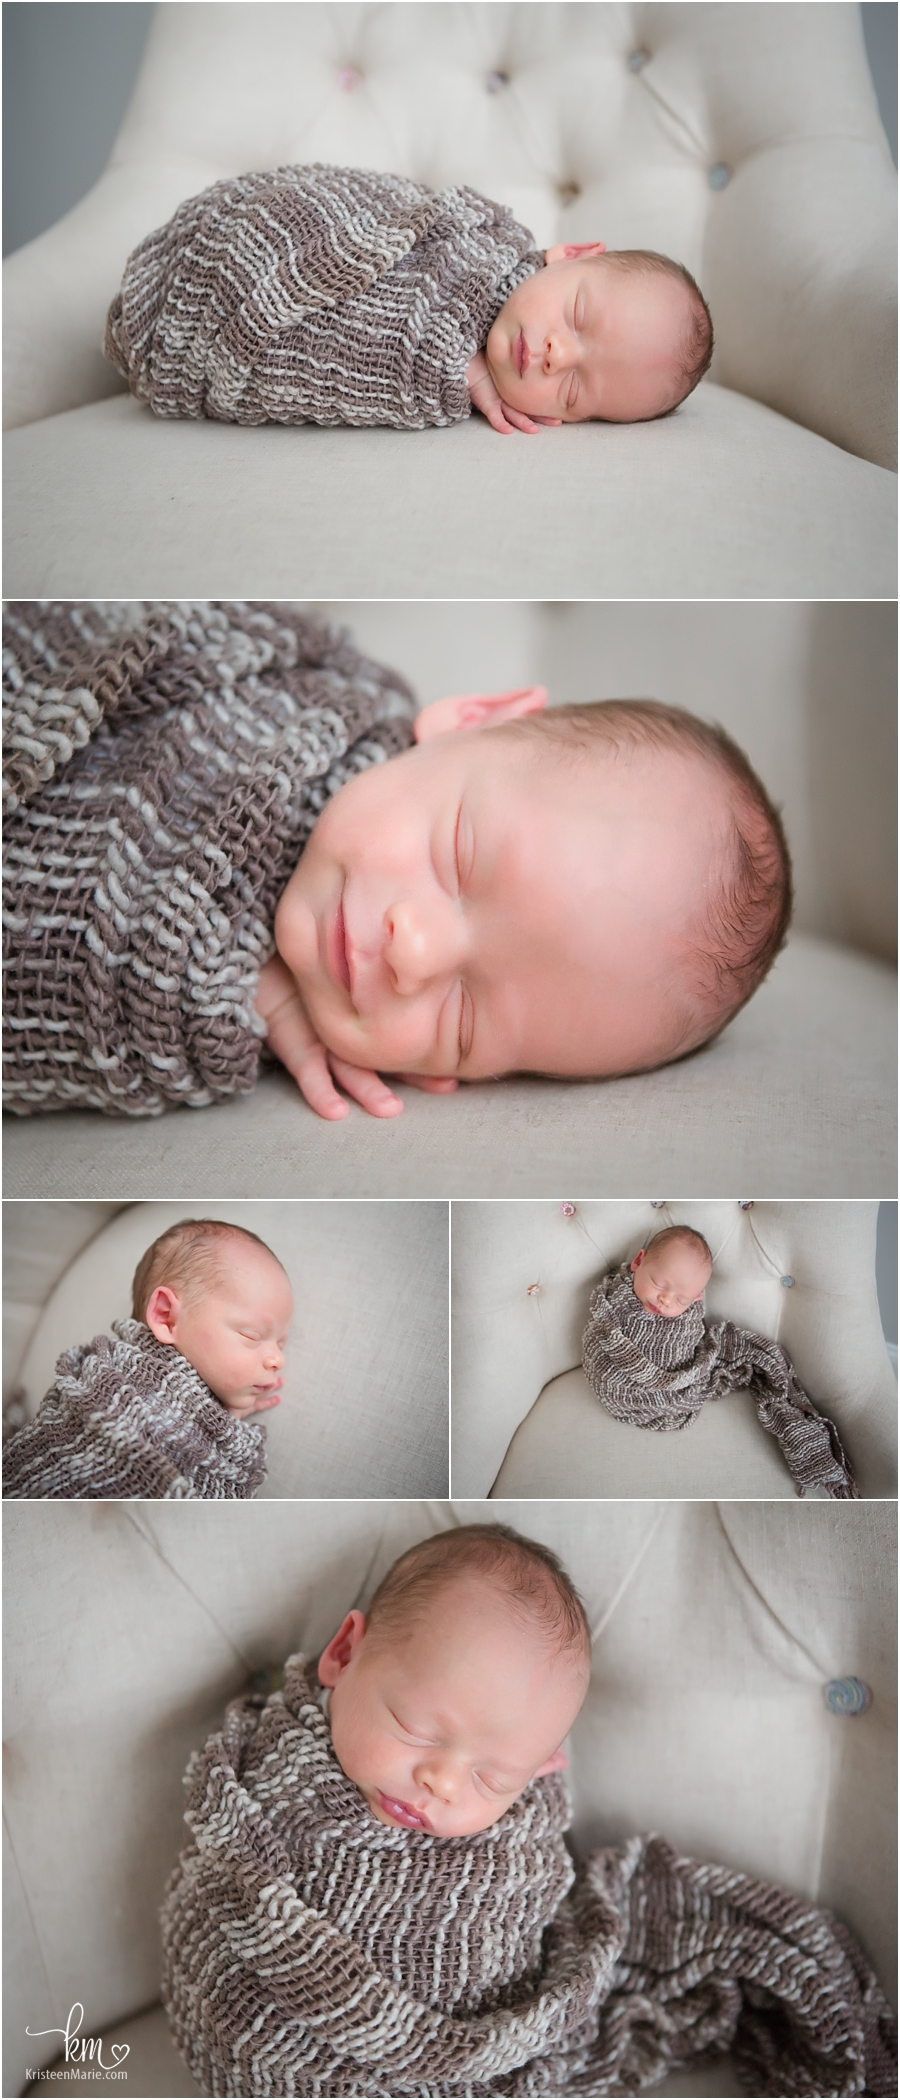 wrapped newborn on chair - happy baby - brown tones